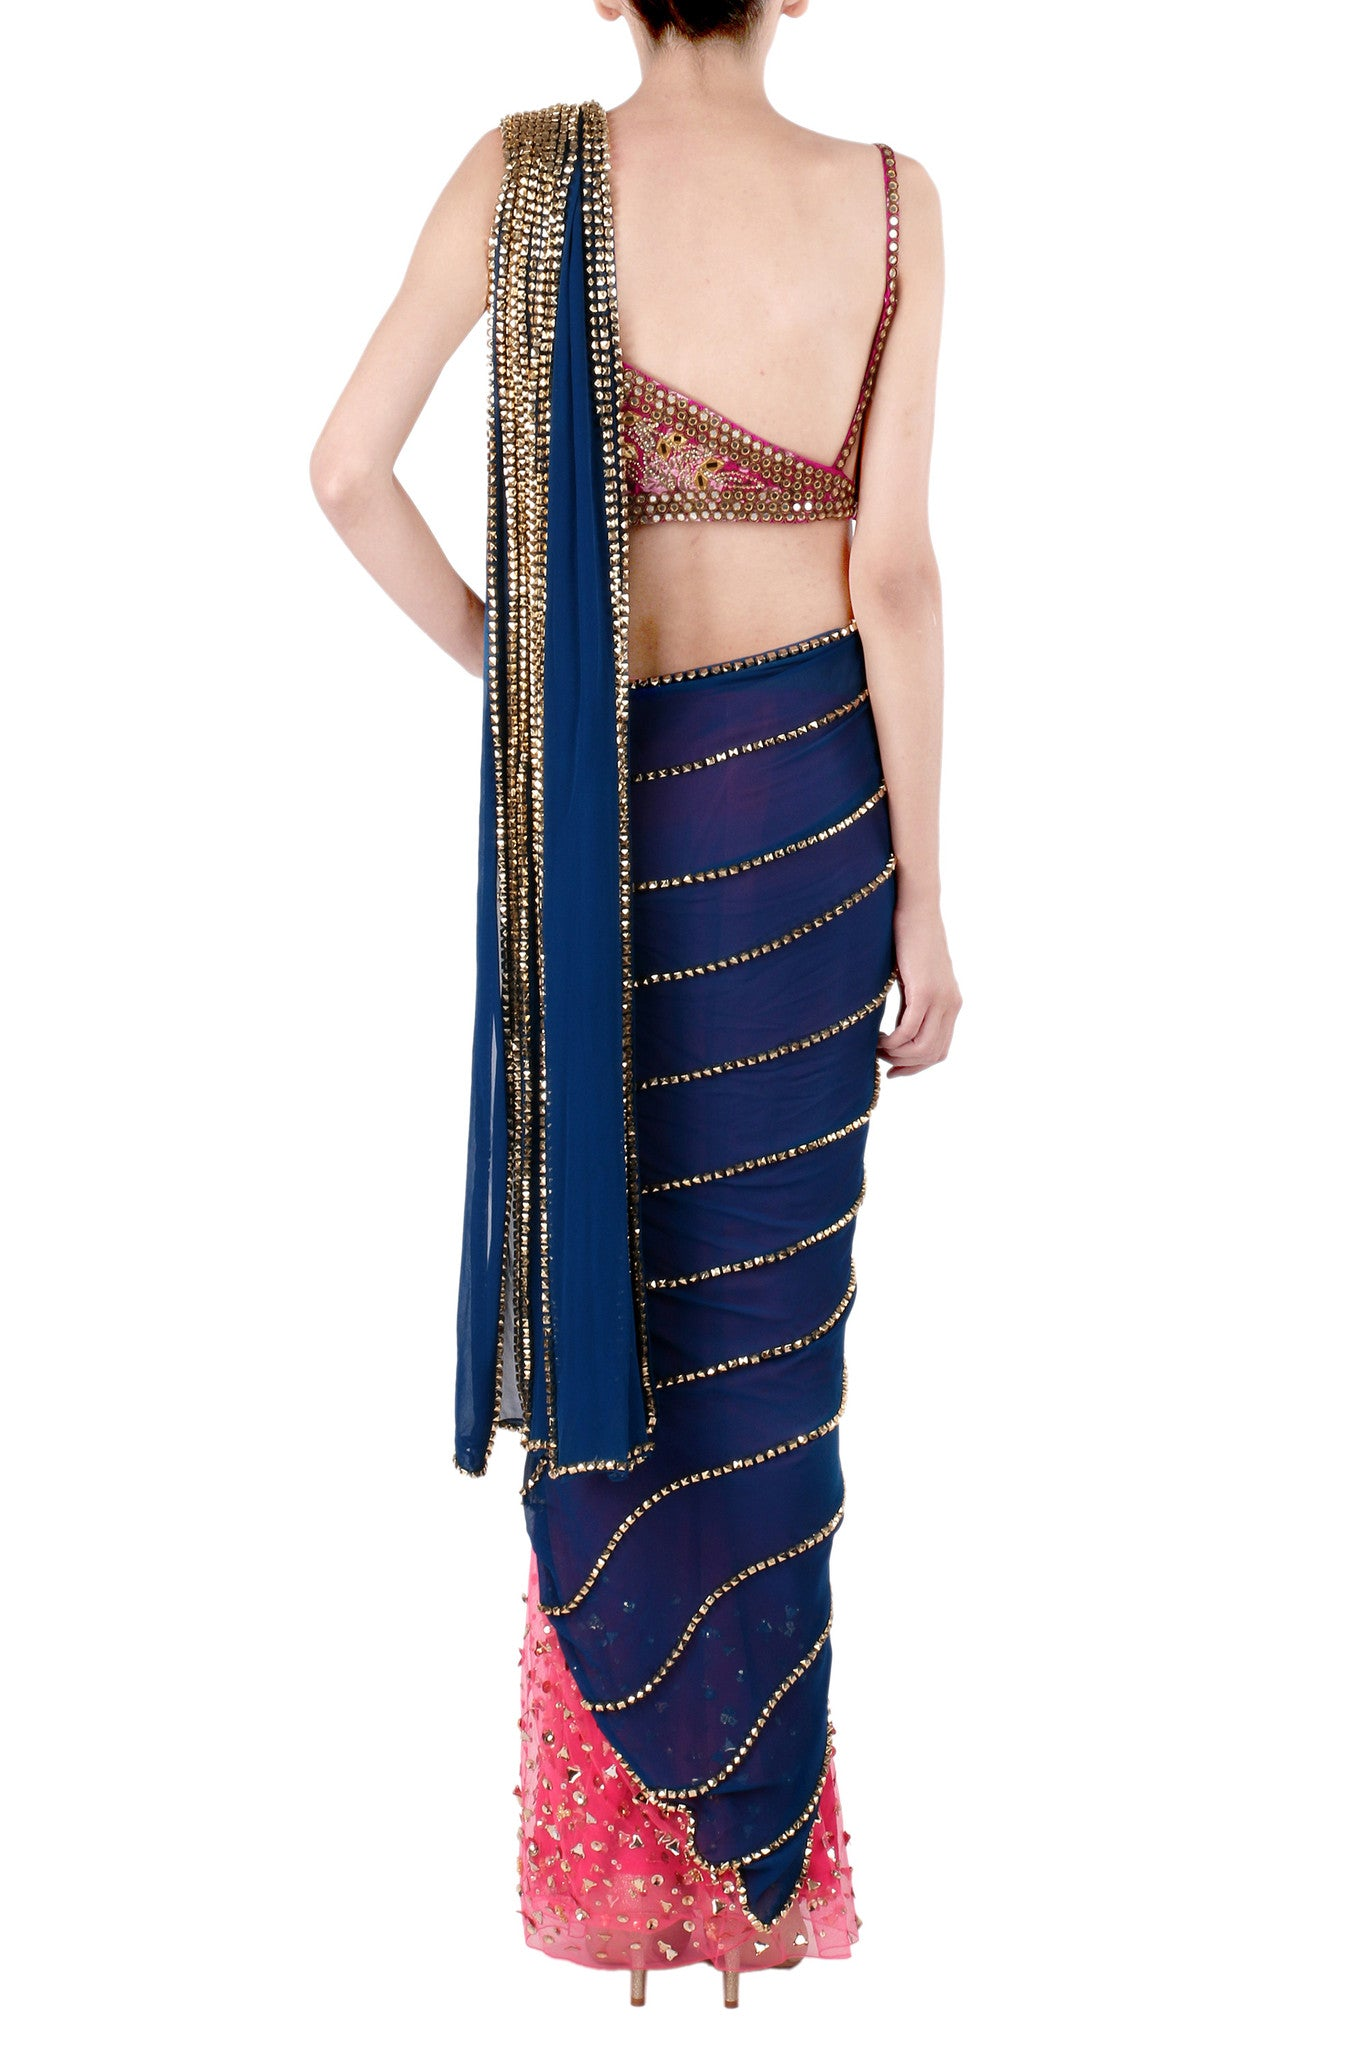 Navy Blue Saree & Hot Pink Blouse Back